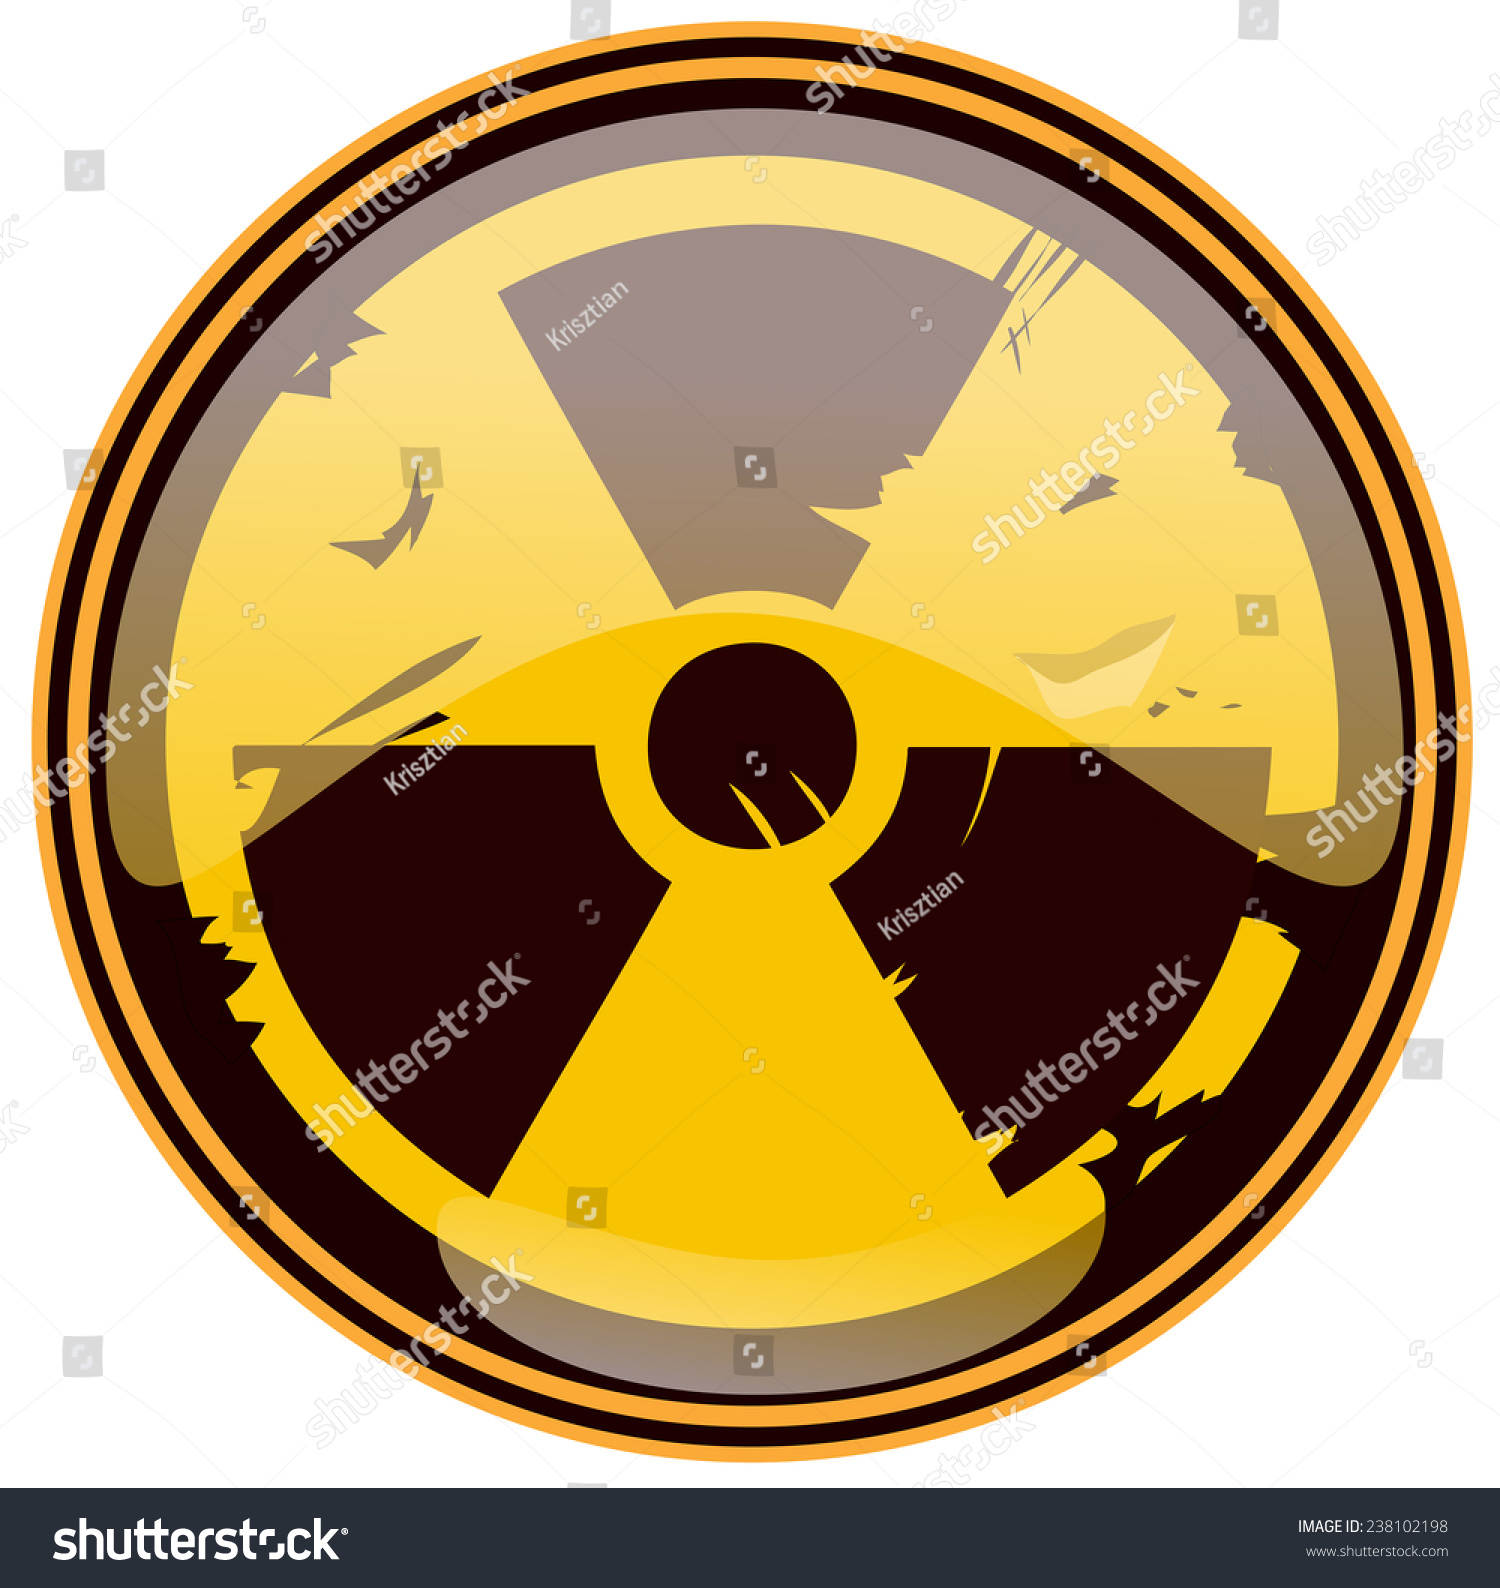 Round Grunge Nuclear Sign Vector Illustration Stock Vector 238102198 ...